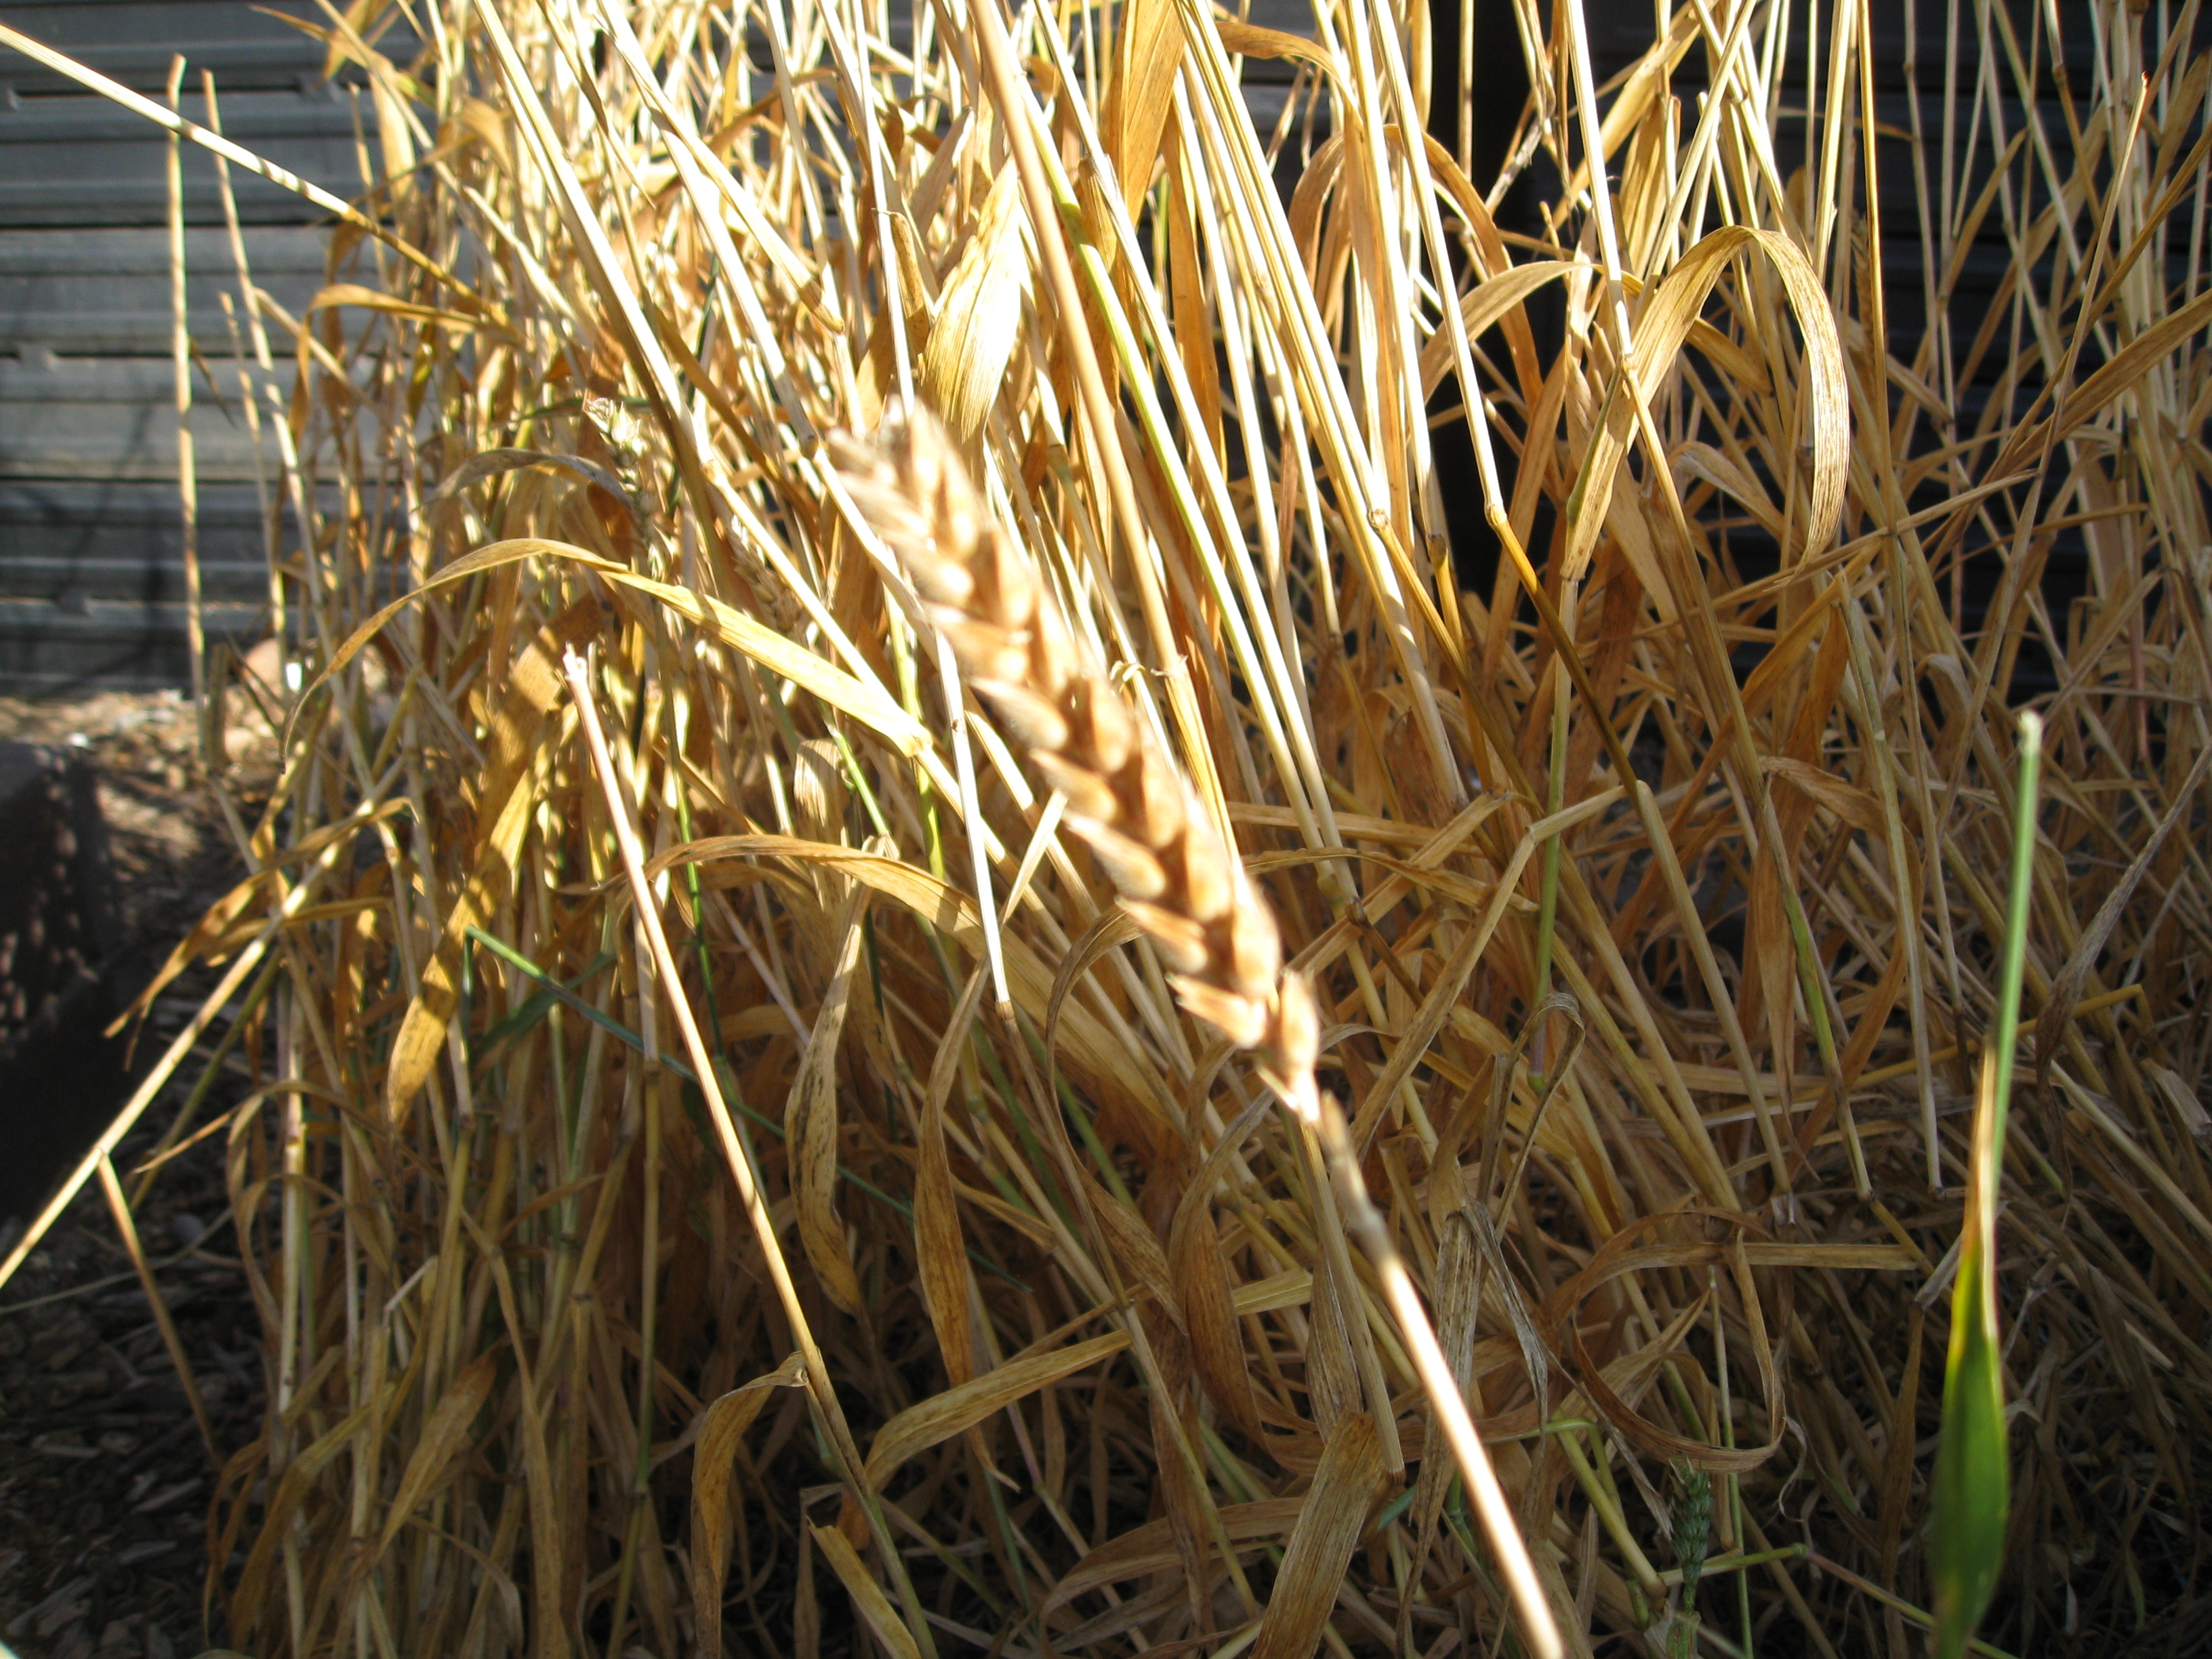 Sonora white wheat is ready for harvest.